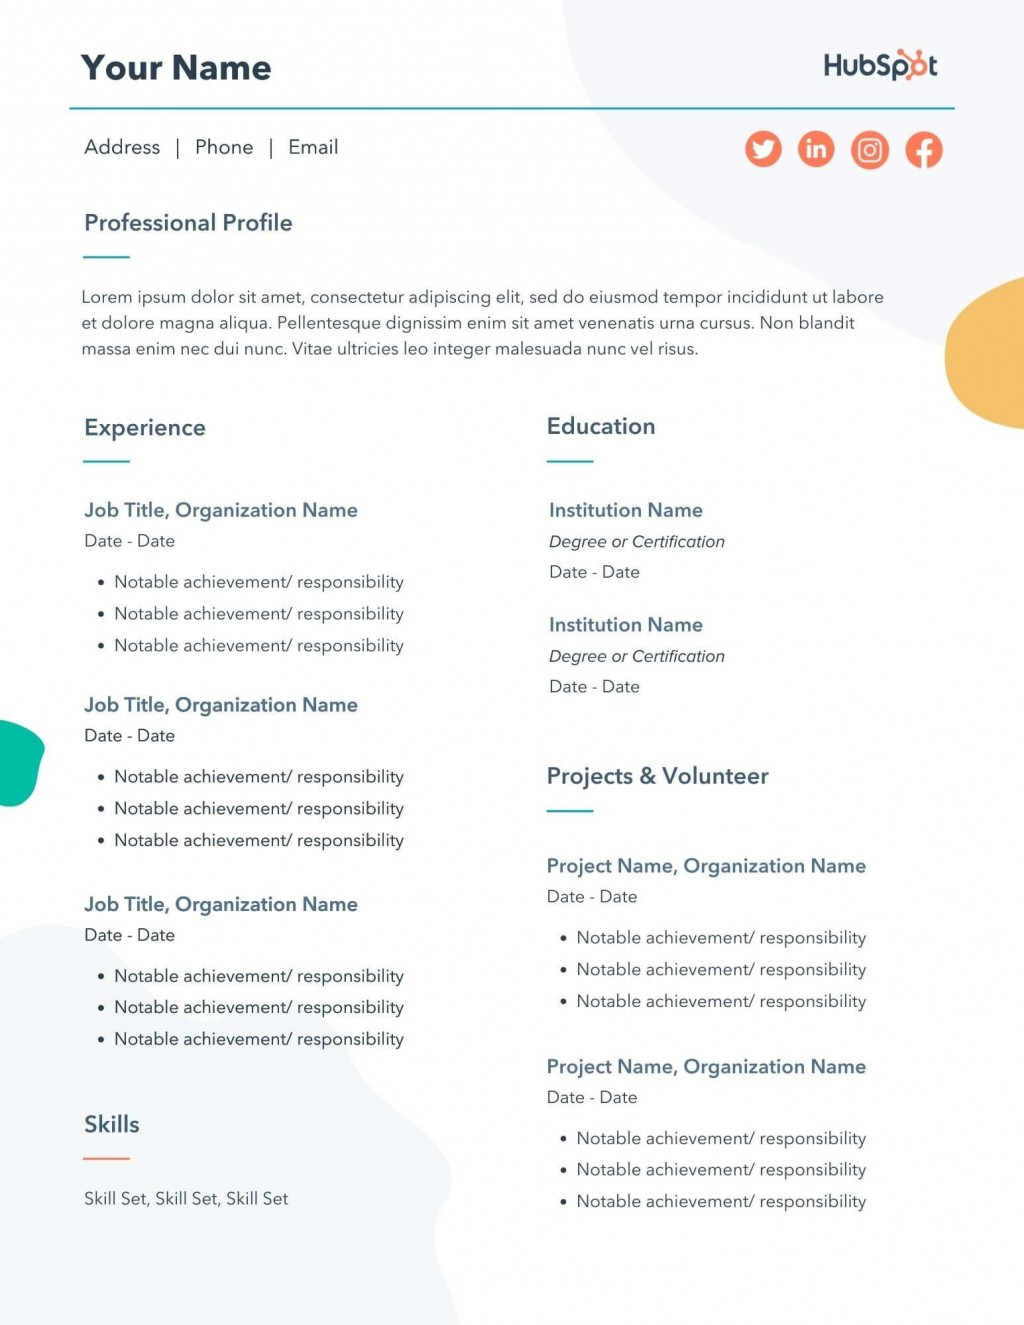 009 Impressive Make A Resume Template In Word Image  How To 2010 2007Large